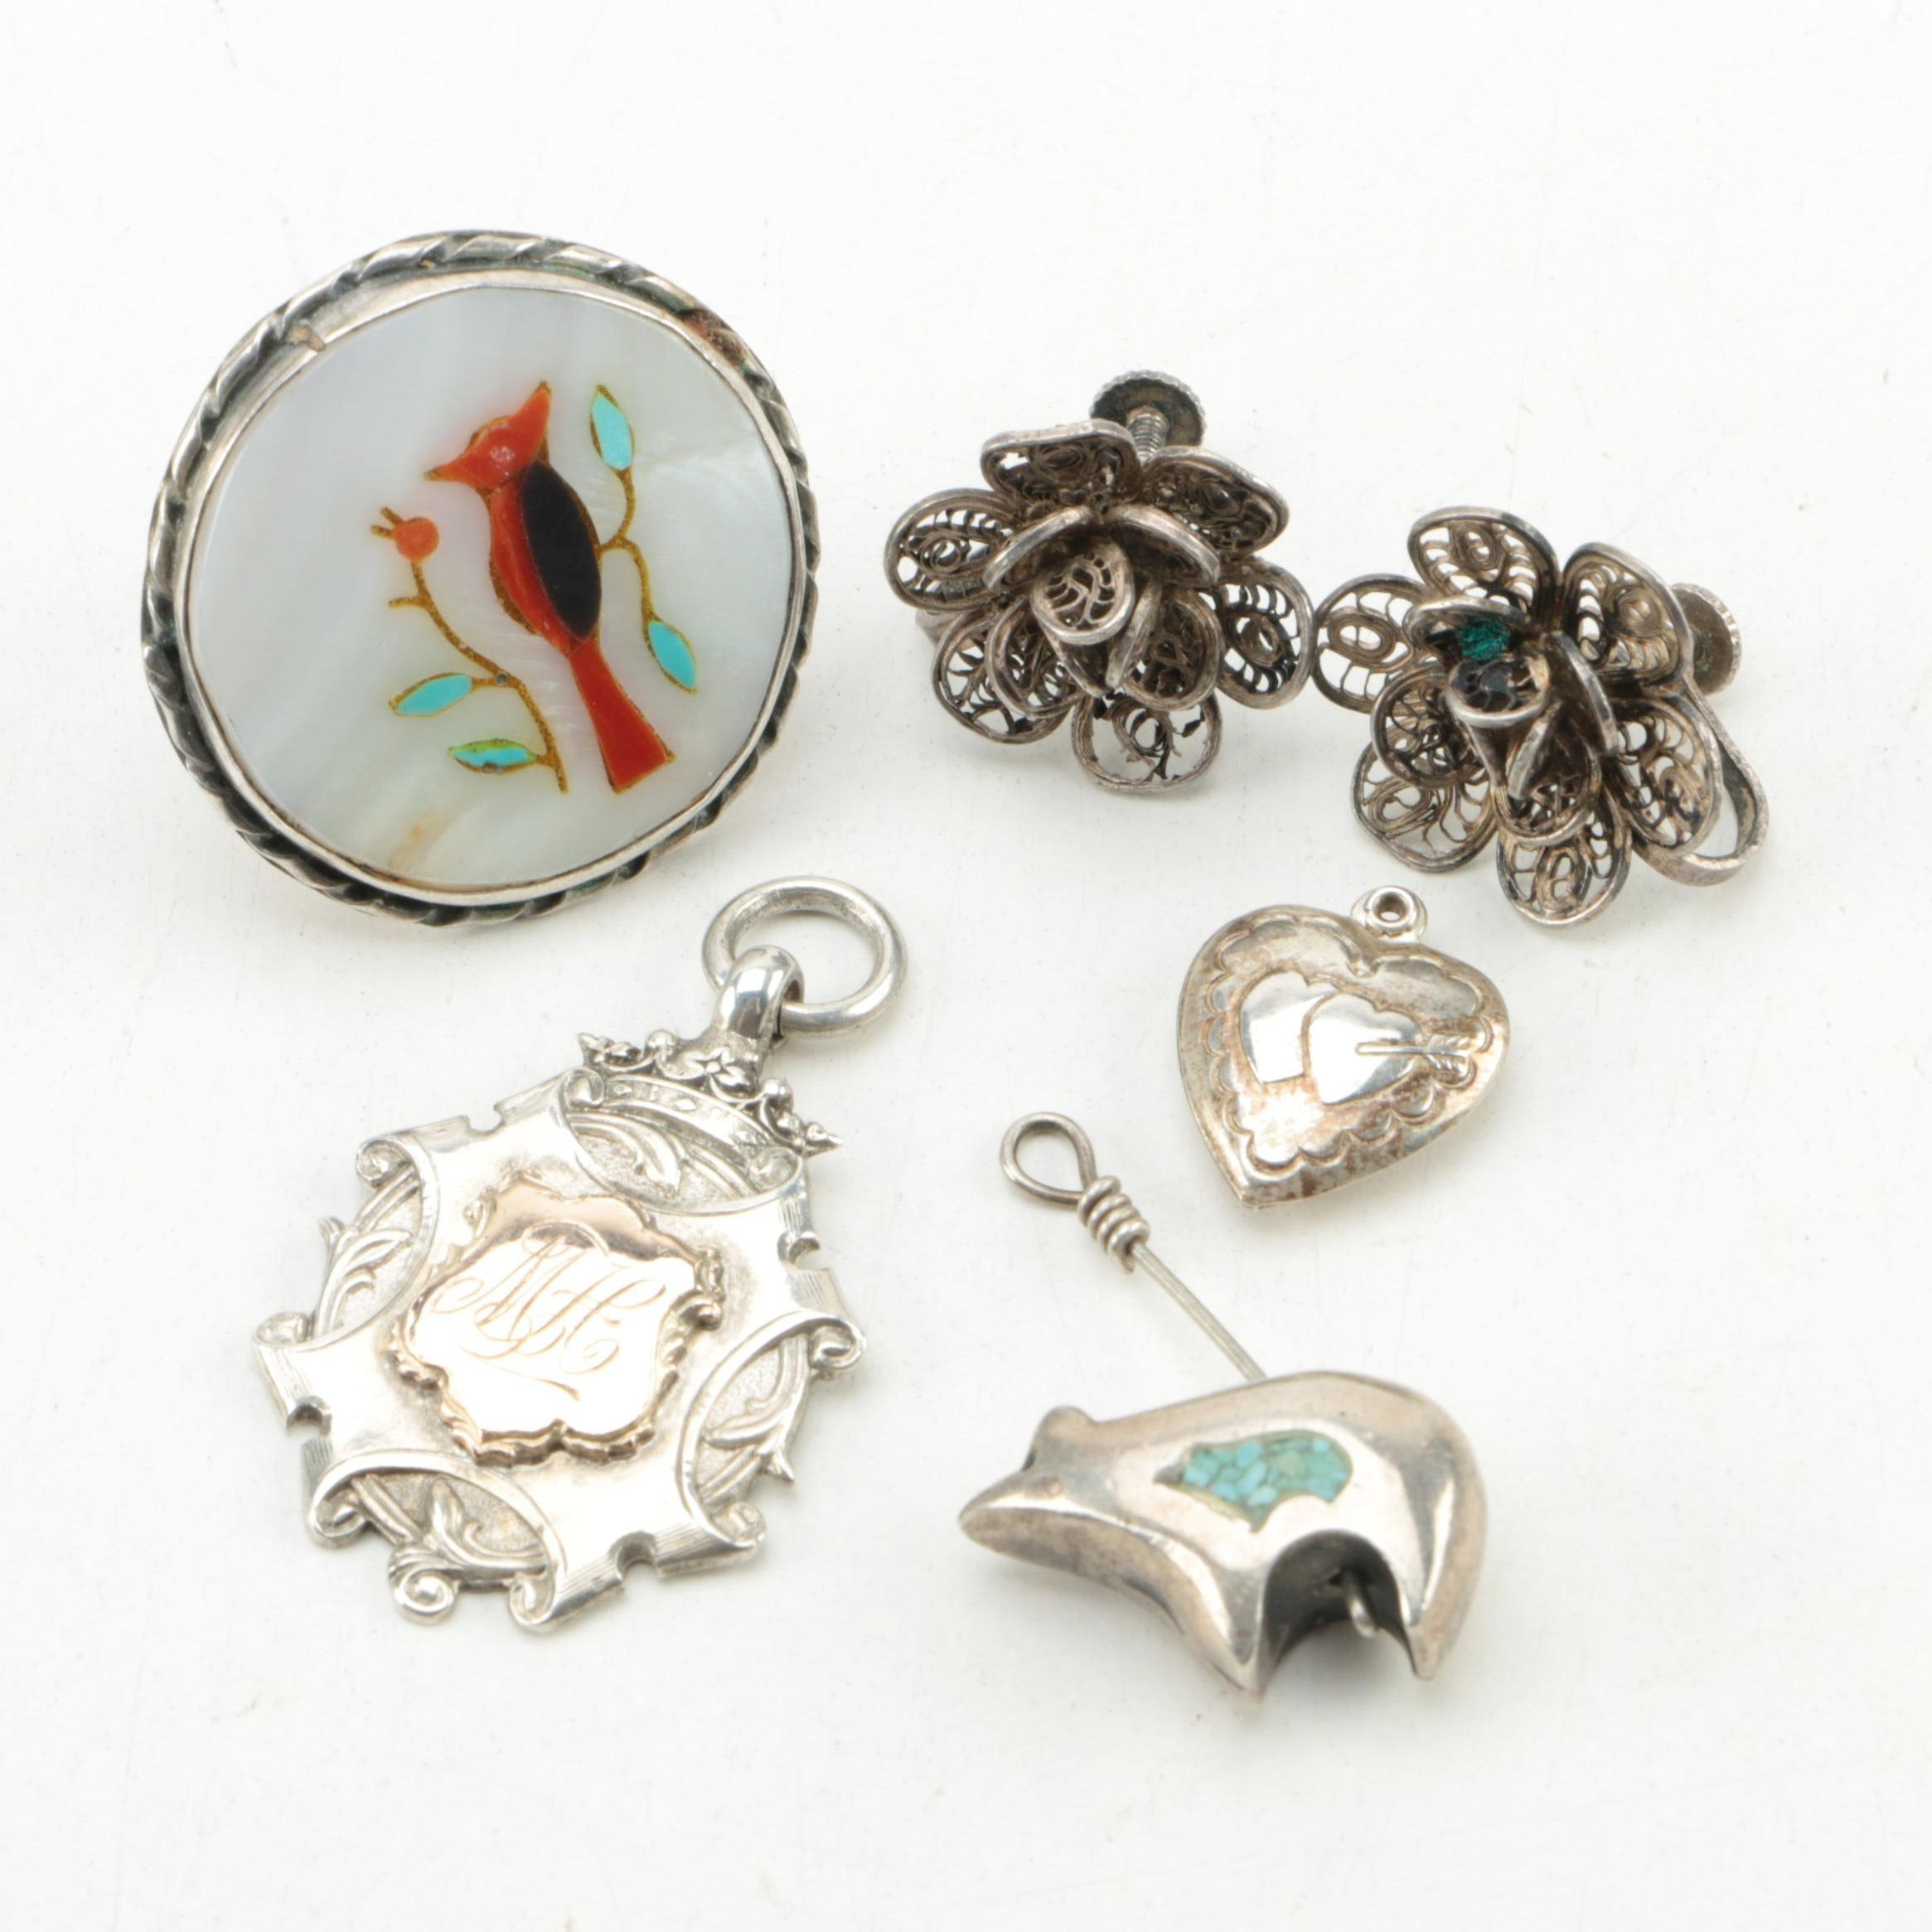 Assortment of Sterling Silver Mother of Pearl, Turquoise and Coral Jewelry